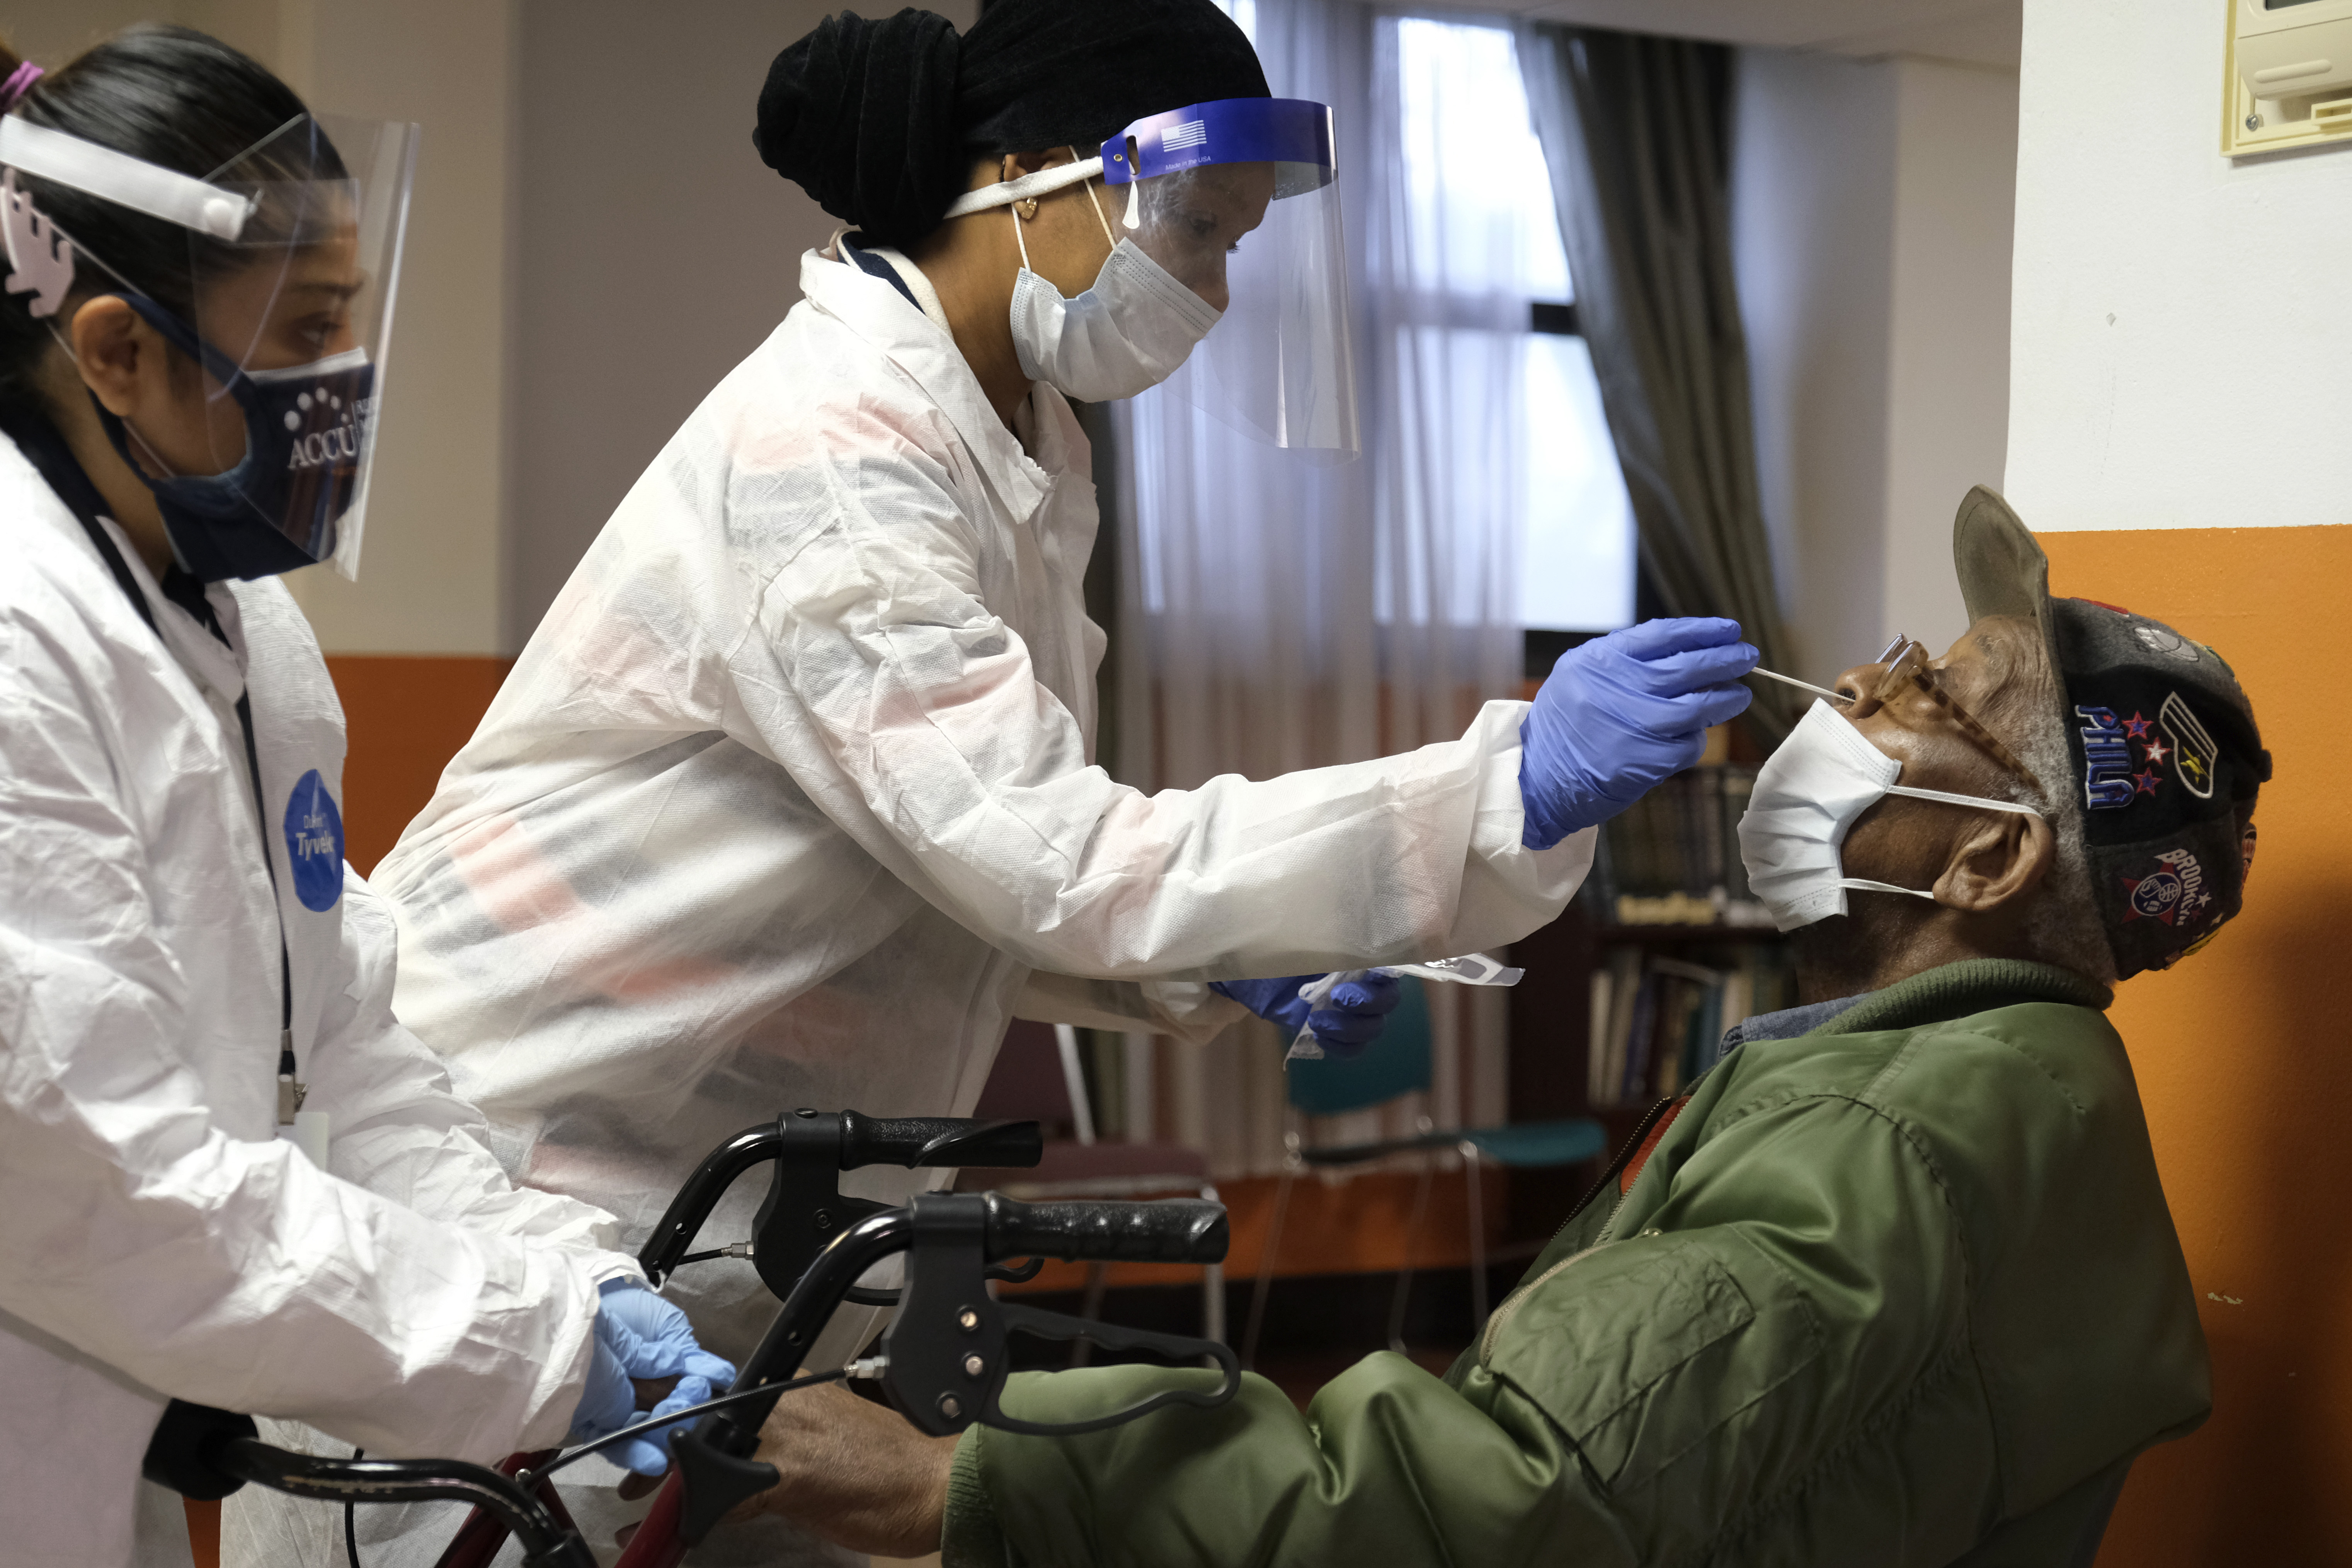 Willie Johnson, right, a resident of senior housing, gets tested for Covid-19